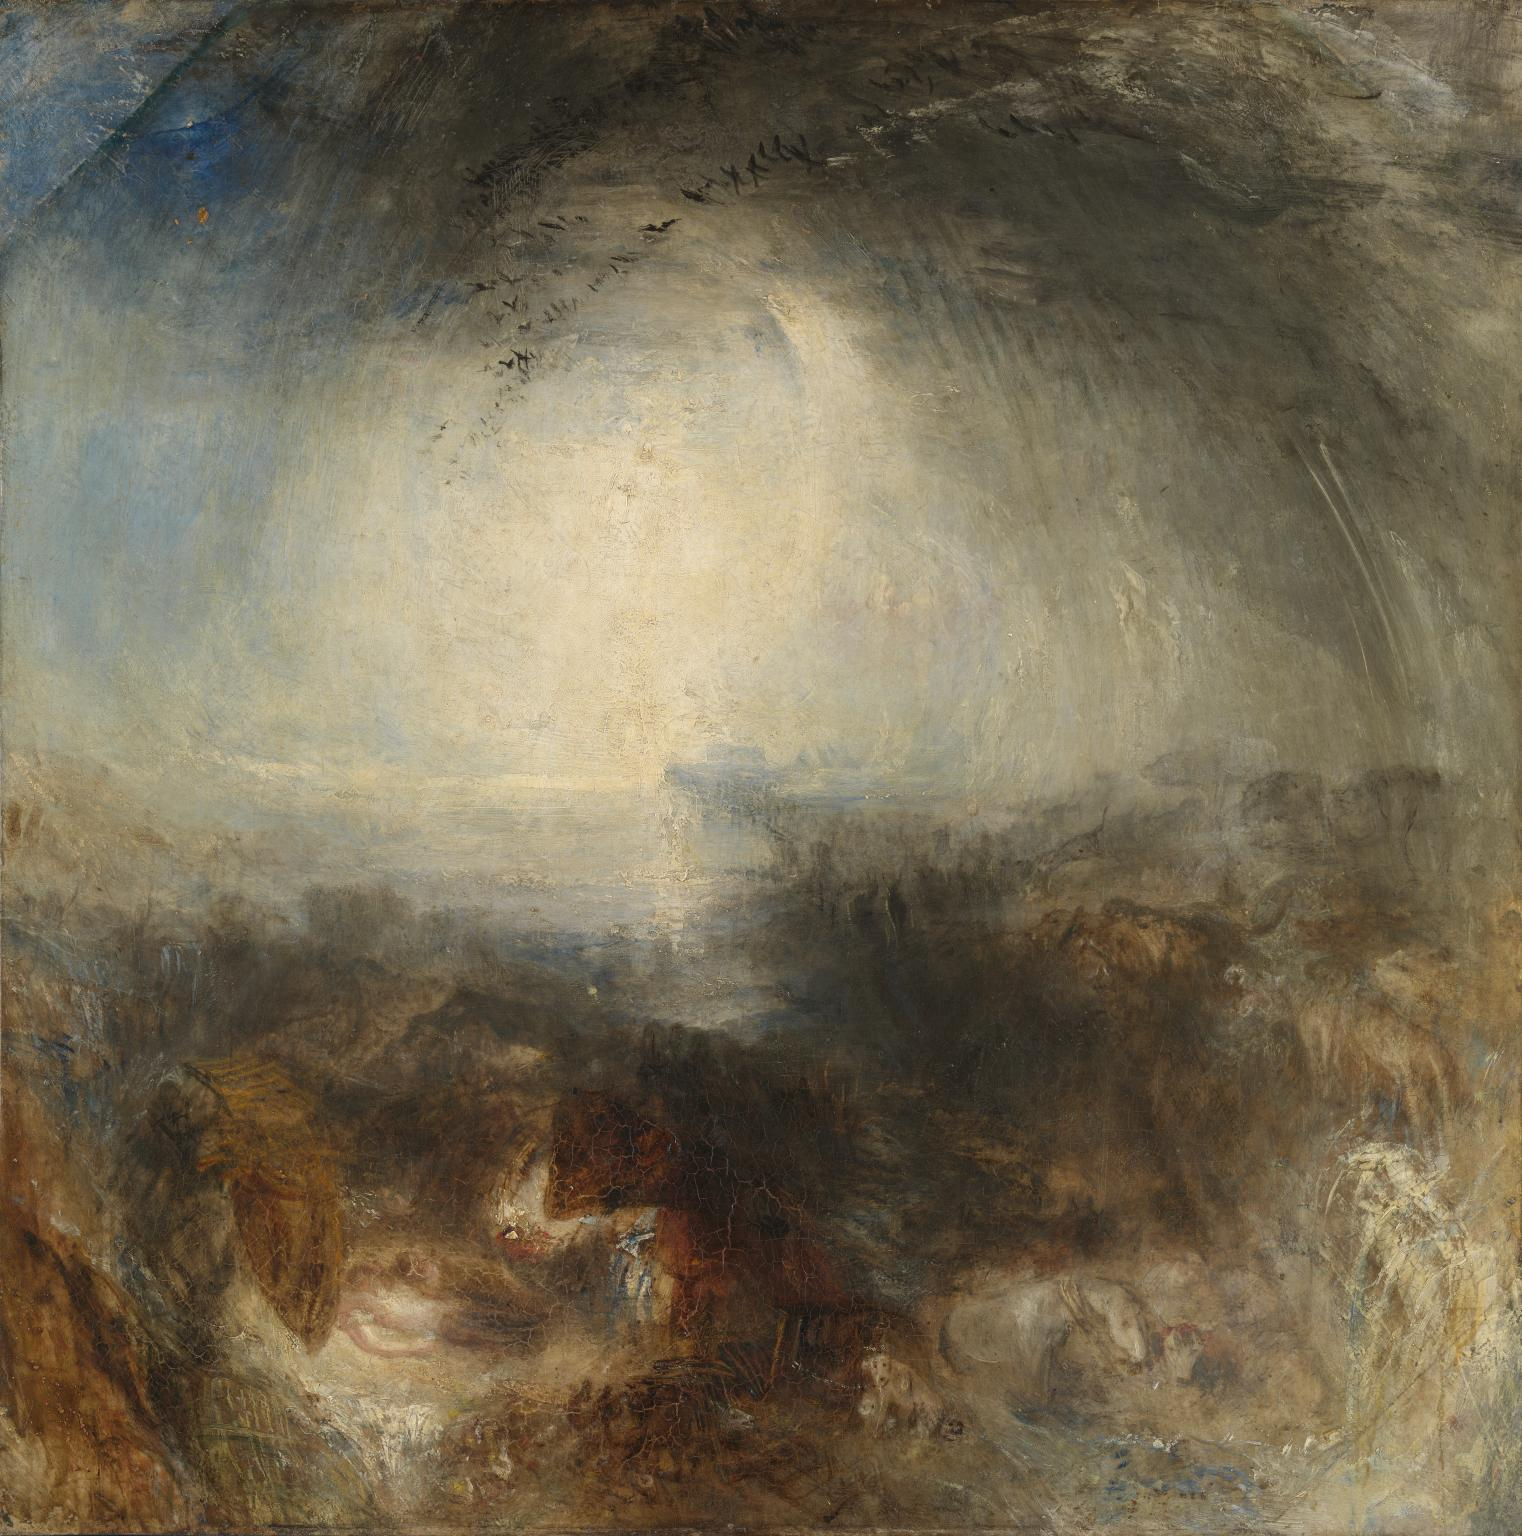 Shade and Darkness, the Evening of the Deluge 1843